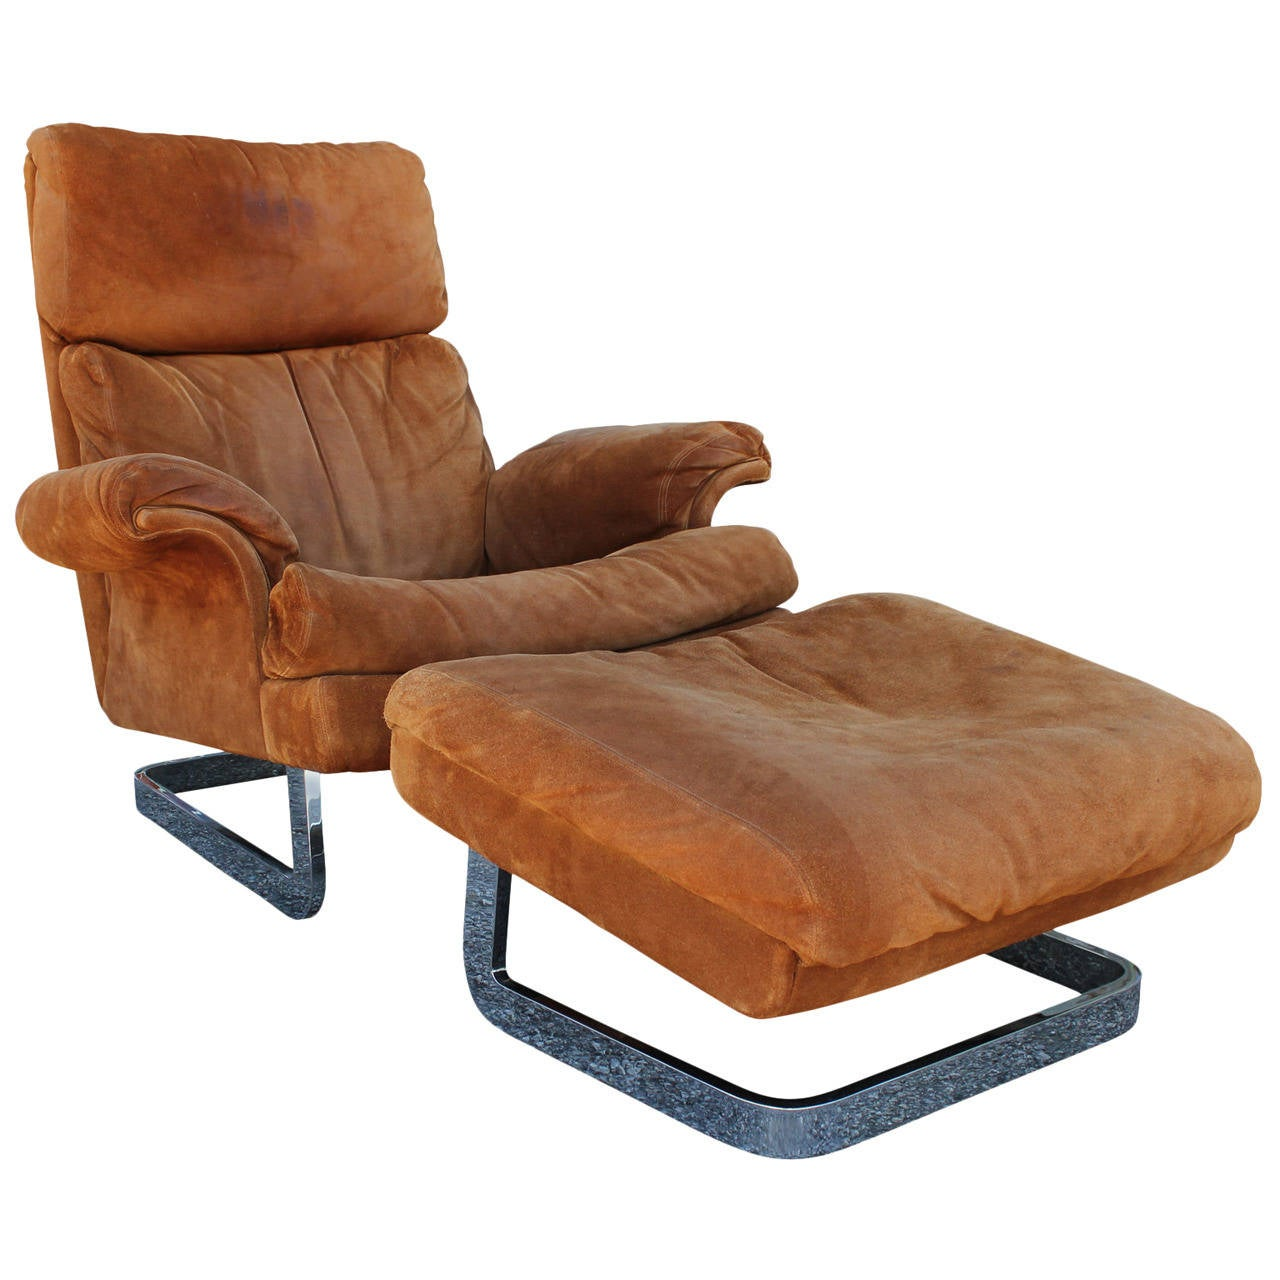 Suede And Heavy Chrome Lounge Chair And Ottoman Milo Baughman Style